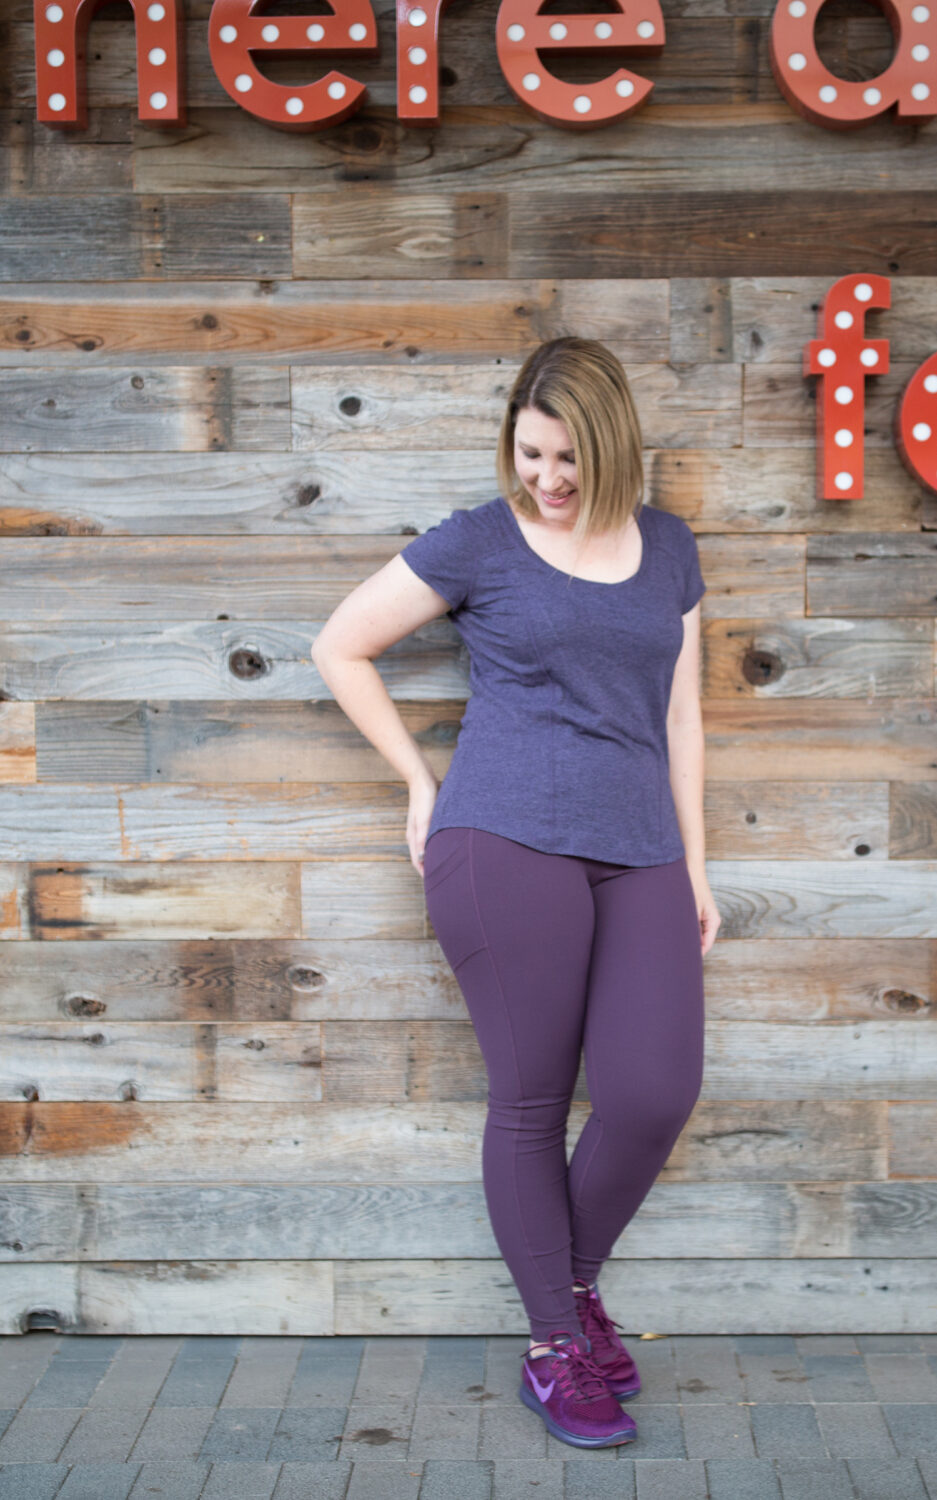 Are Zella leggings worth all that money? Find out from Los Angeles Lifestyle blogger, Lipgloss & Crayons as she reviews this workout wear brand. Plus, get the details on these purple workout pants and purple running shoes!